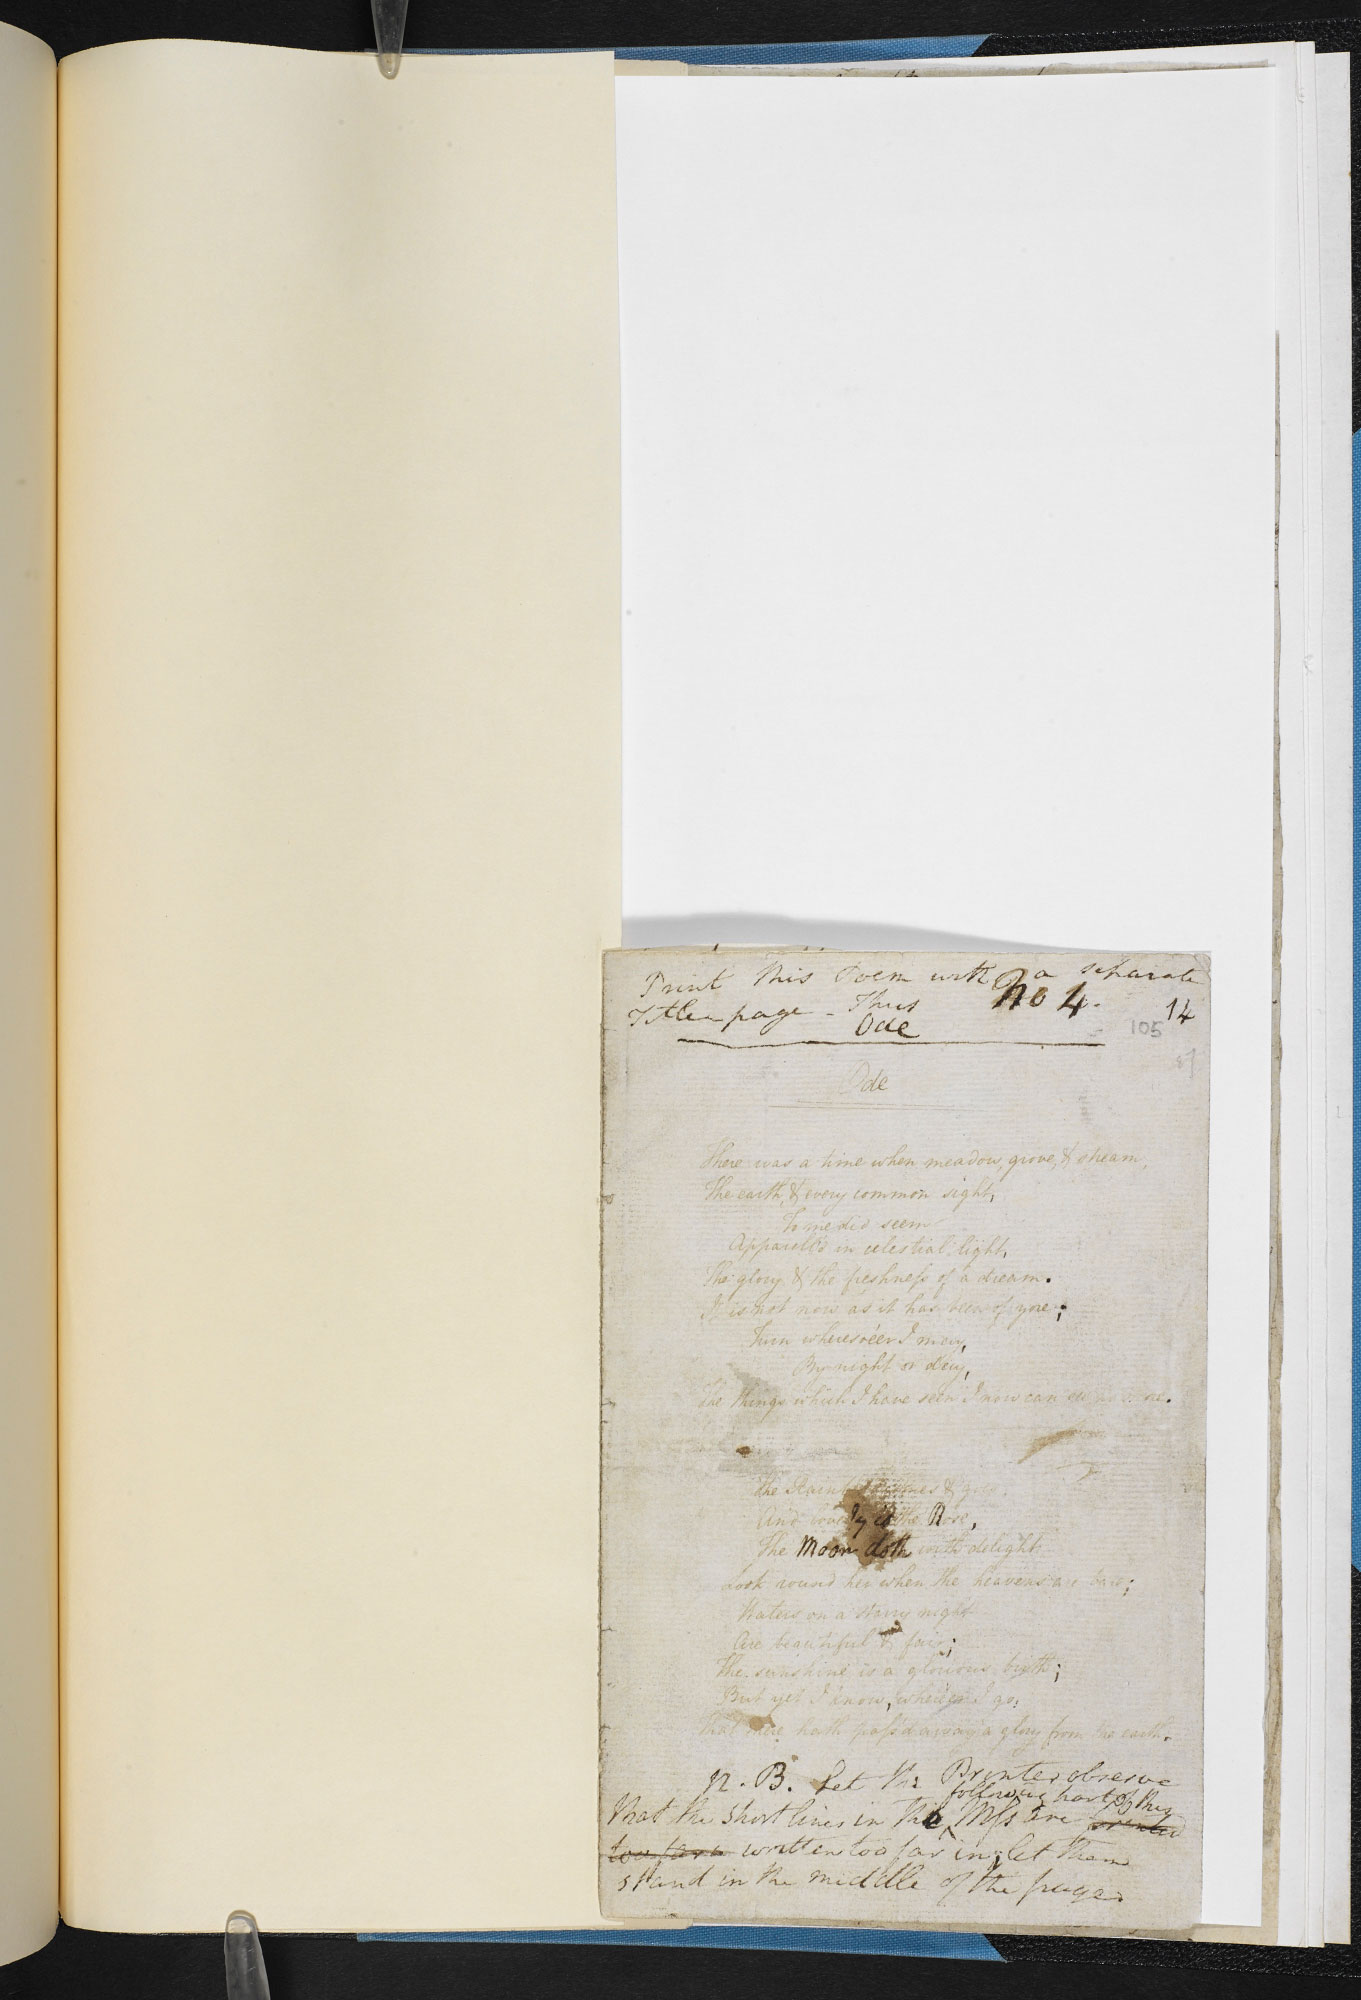 Manuscript of 'Intimations of Immortality' by William Wordsworth